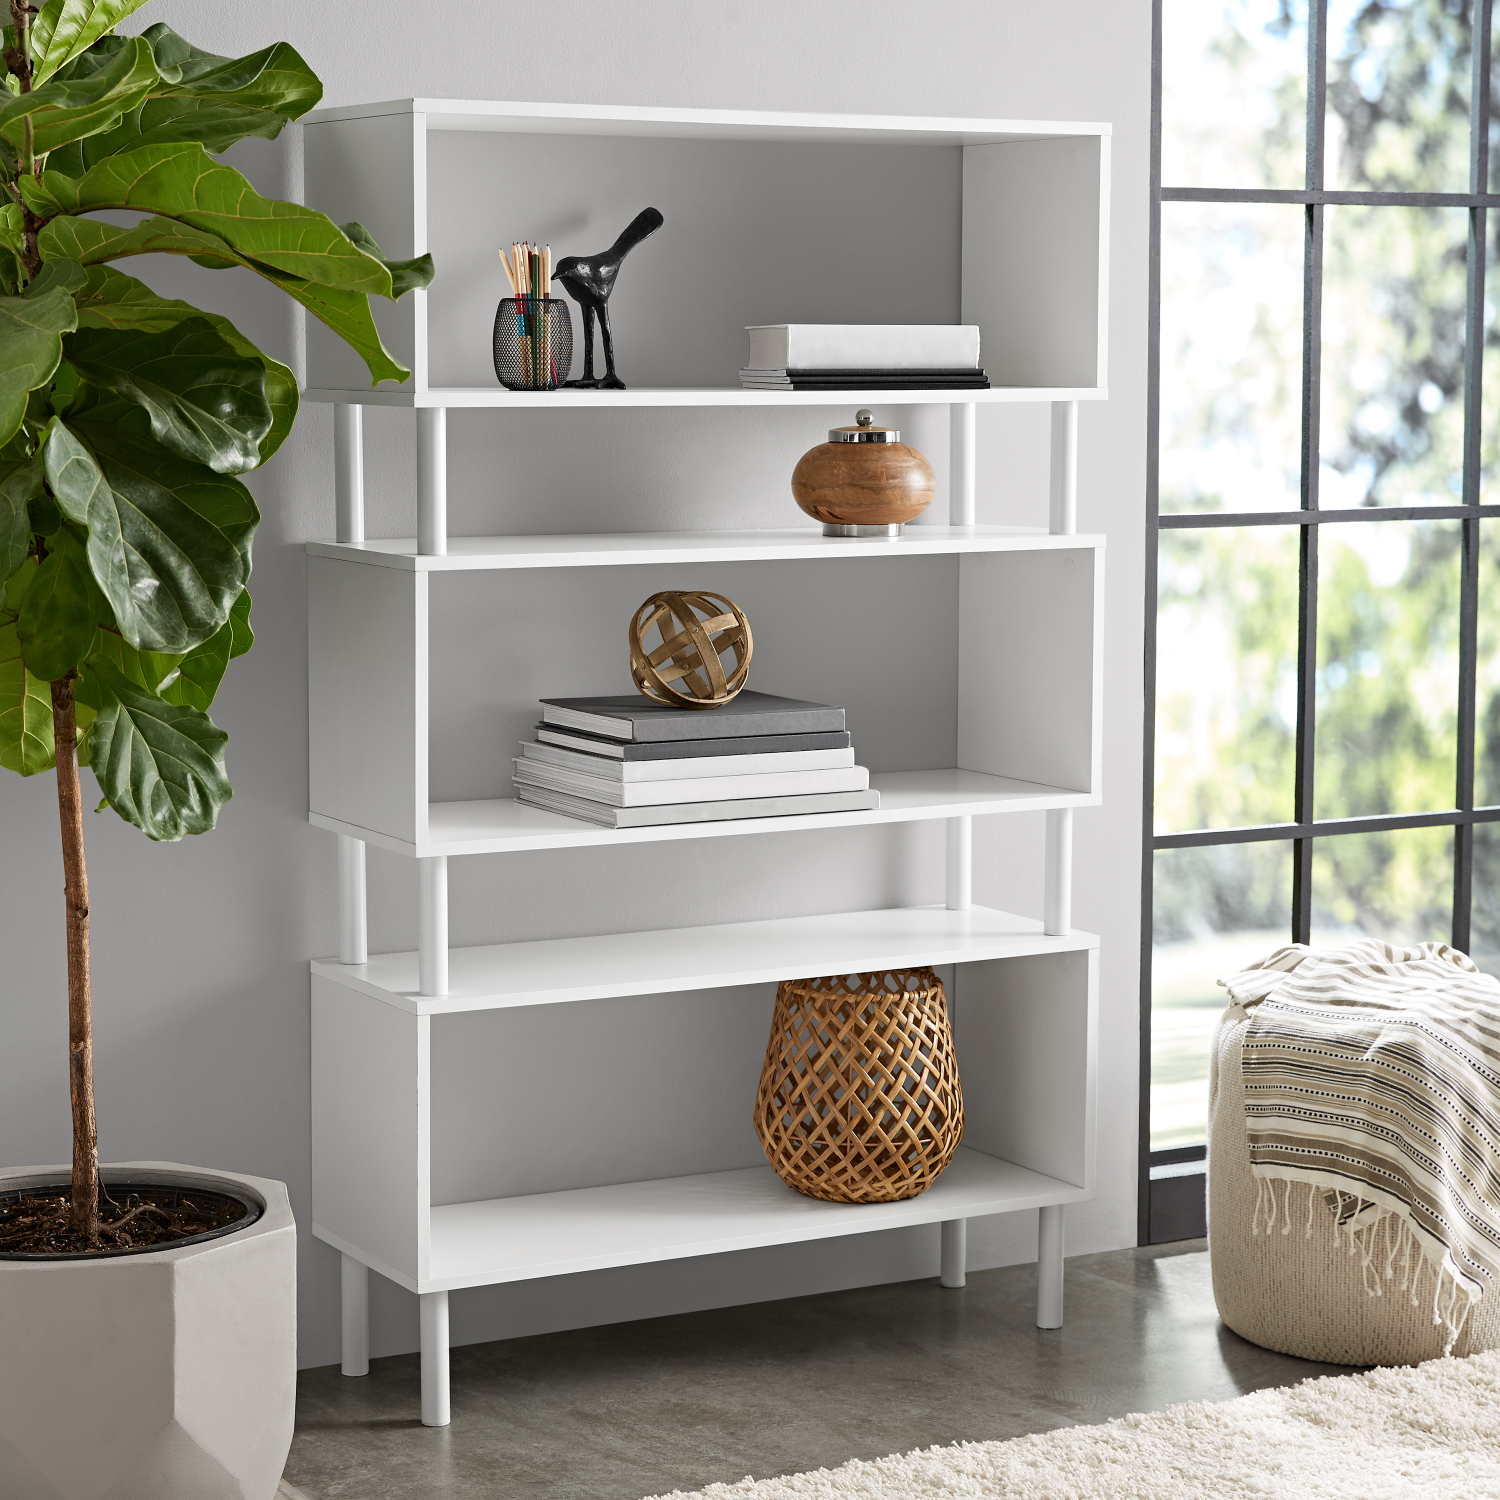 Tall Bookcase Cubby Large Open Bookshelf Modern Cube 3 ...